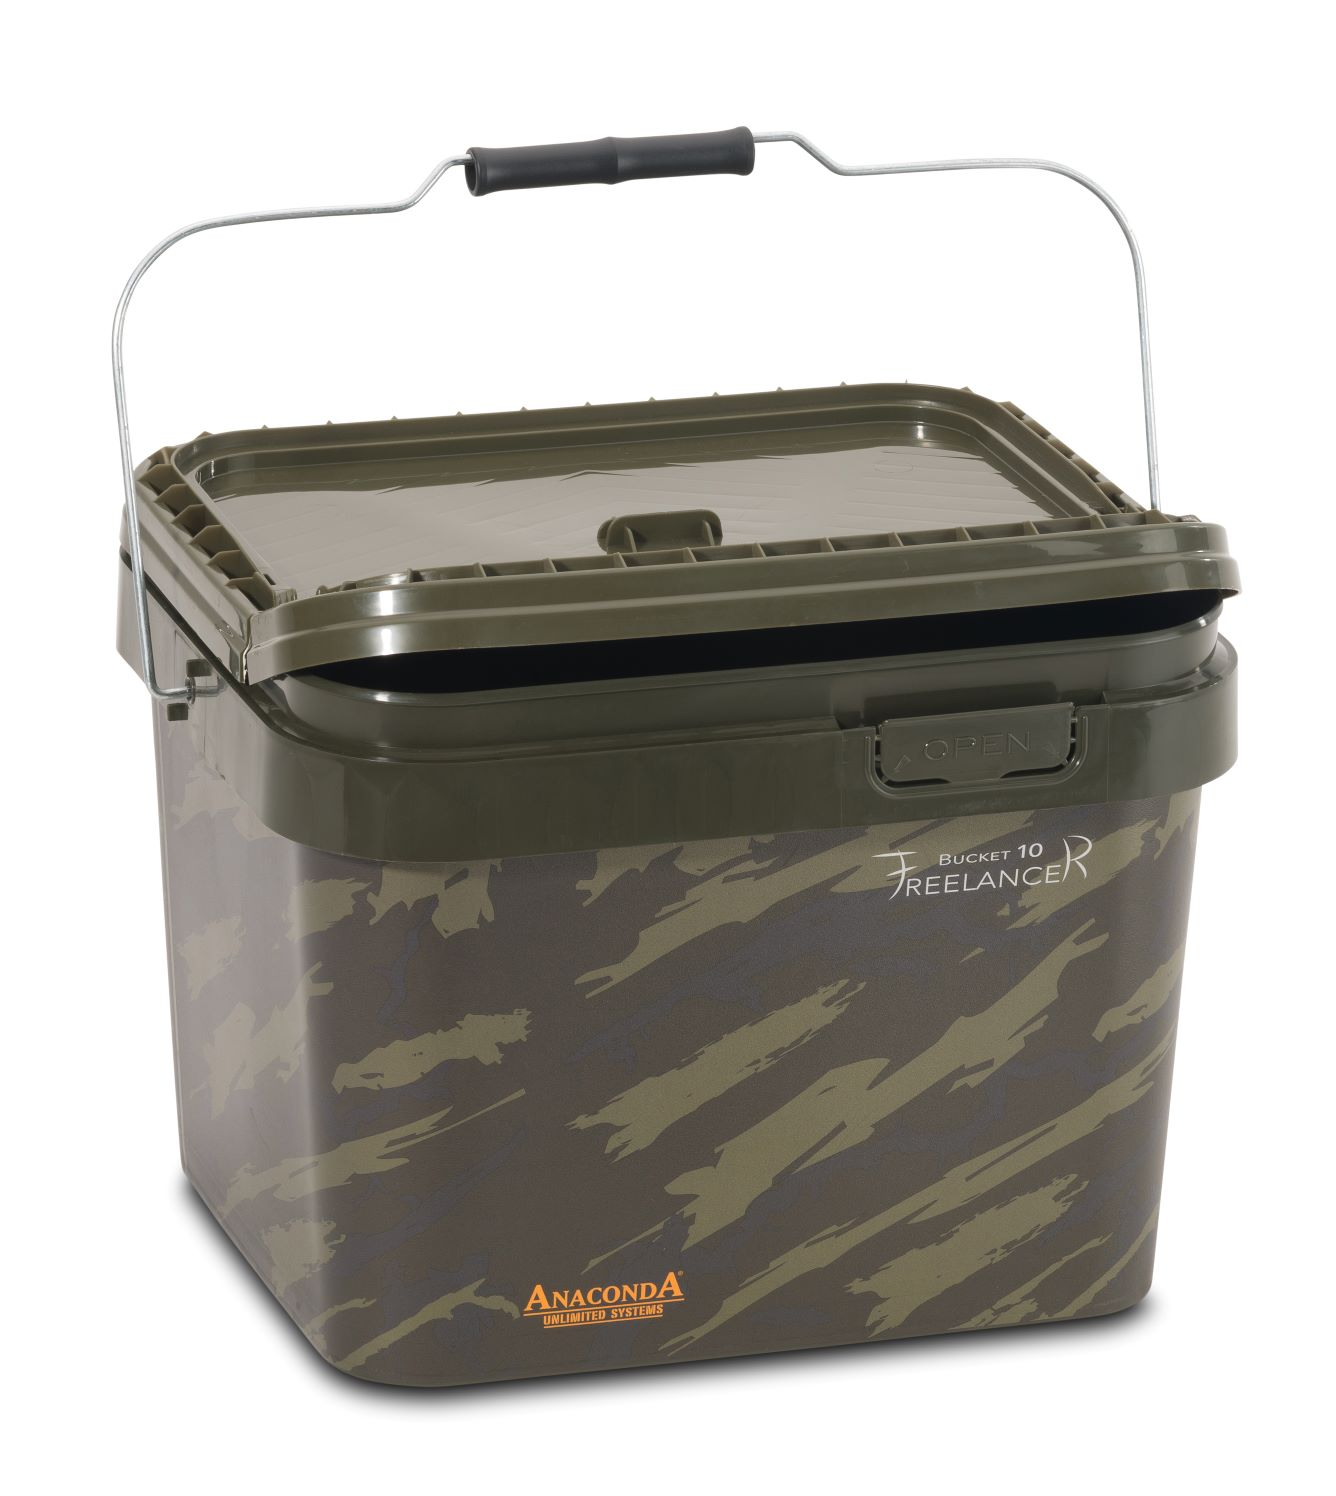 Anaconda kbelík Freelancer Bucket, 10 litrů